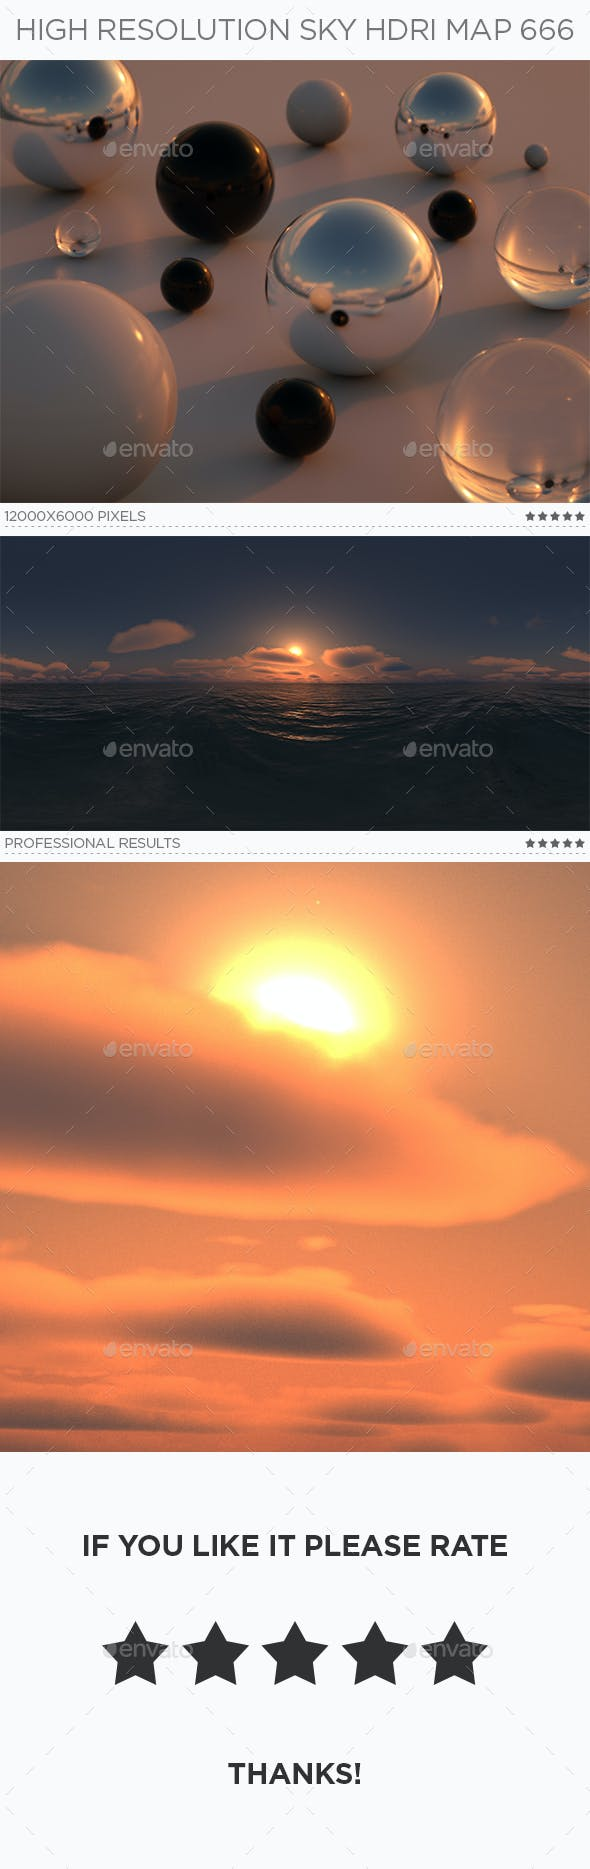 High Resolution Sky HDRi Map 666 - 3DOcean Item for Sale